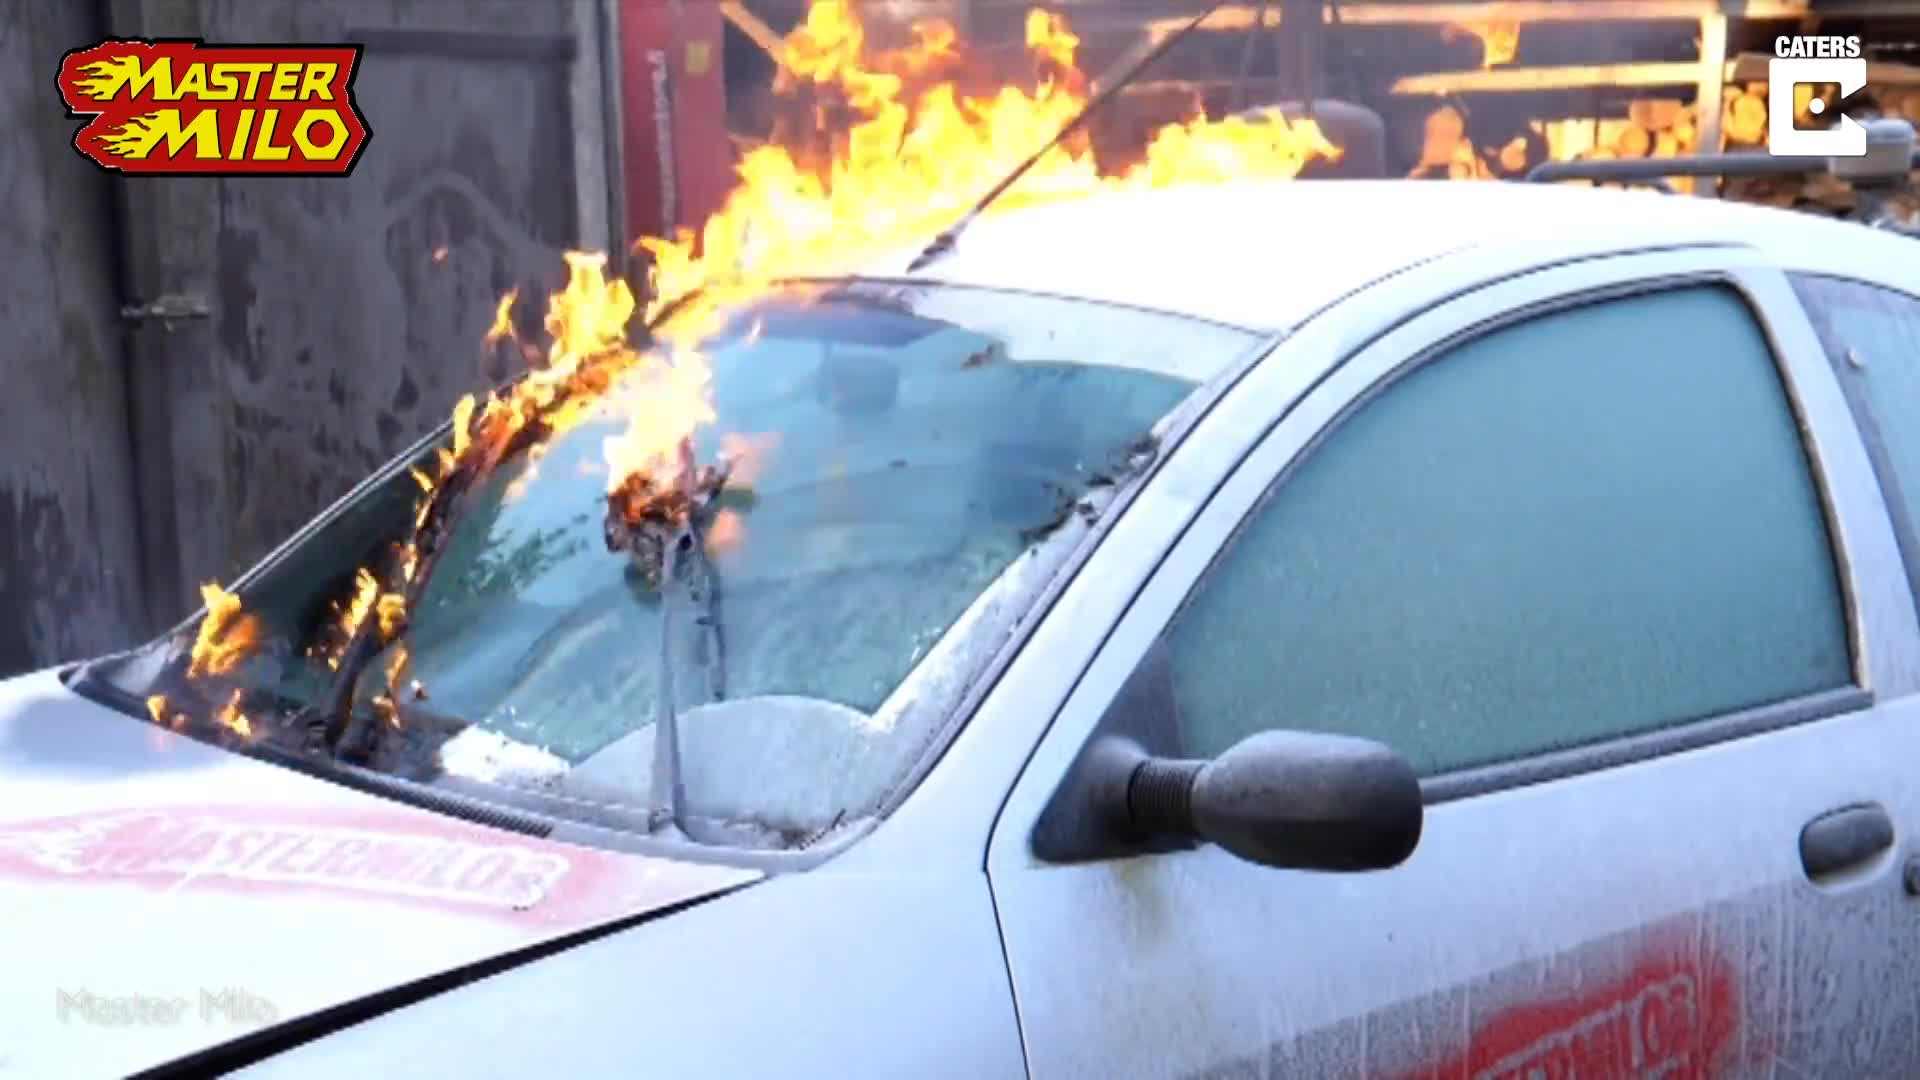 THAT'S ONE WAY TO DE-ICE YOUR CAR: MECHANIC USES FIRE TO RID OF ANY FROST ON HIS MOTOR